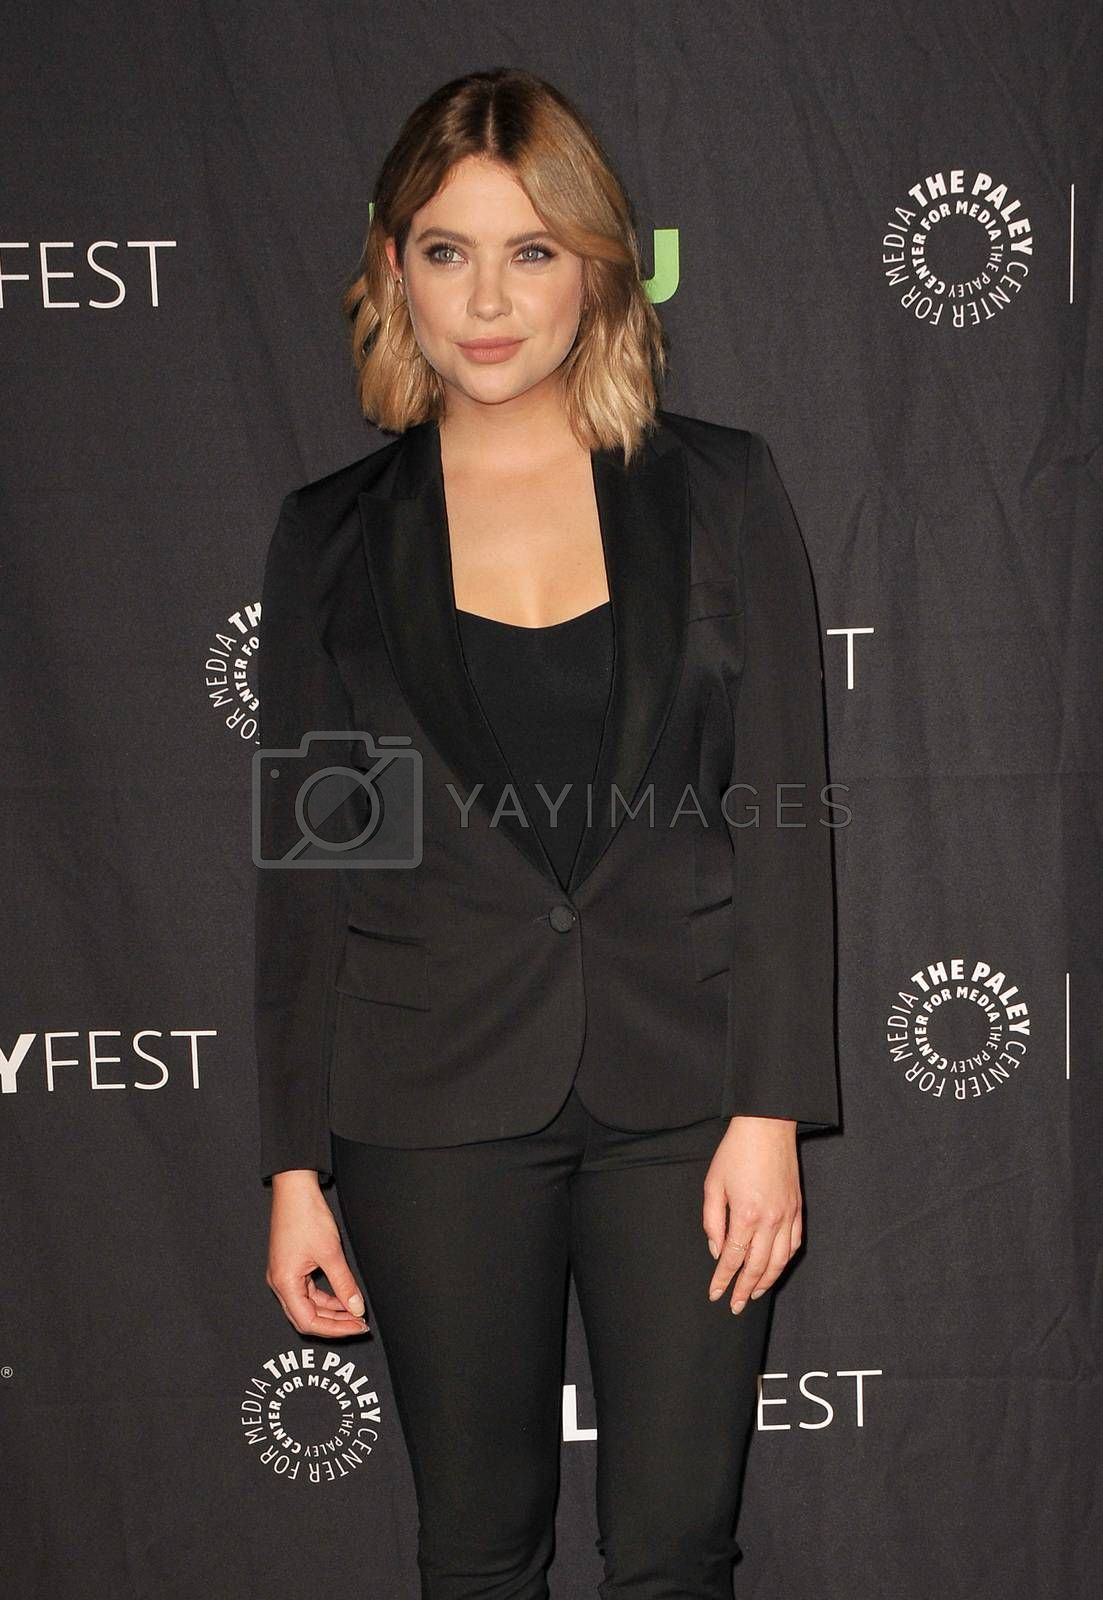 Ashley Benson by Lumeimages